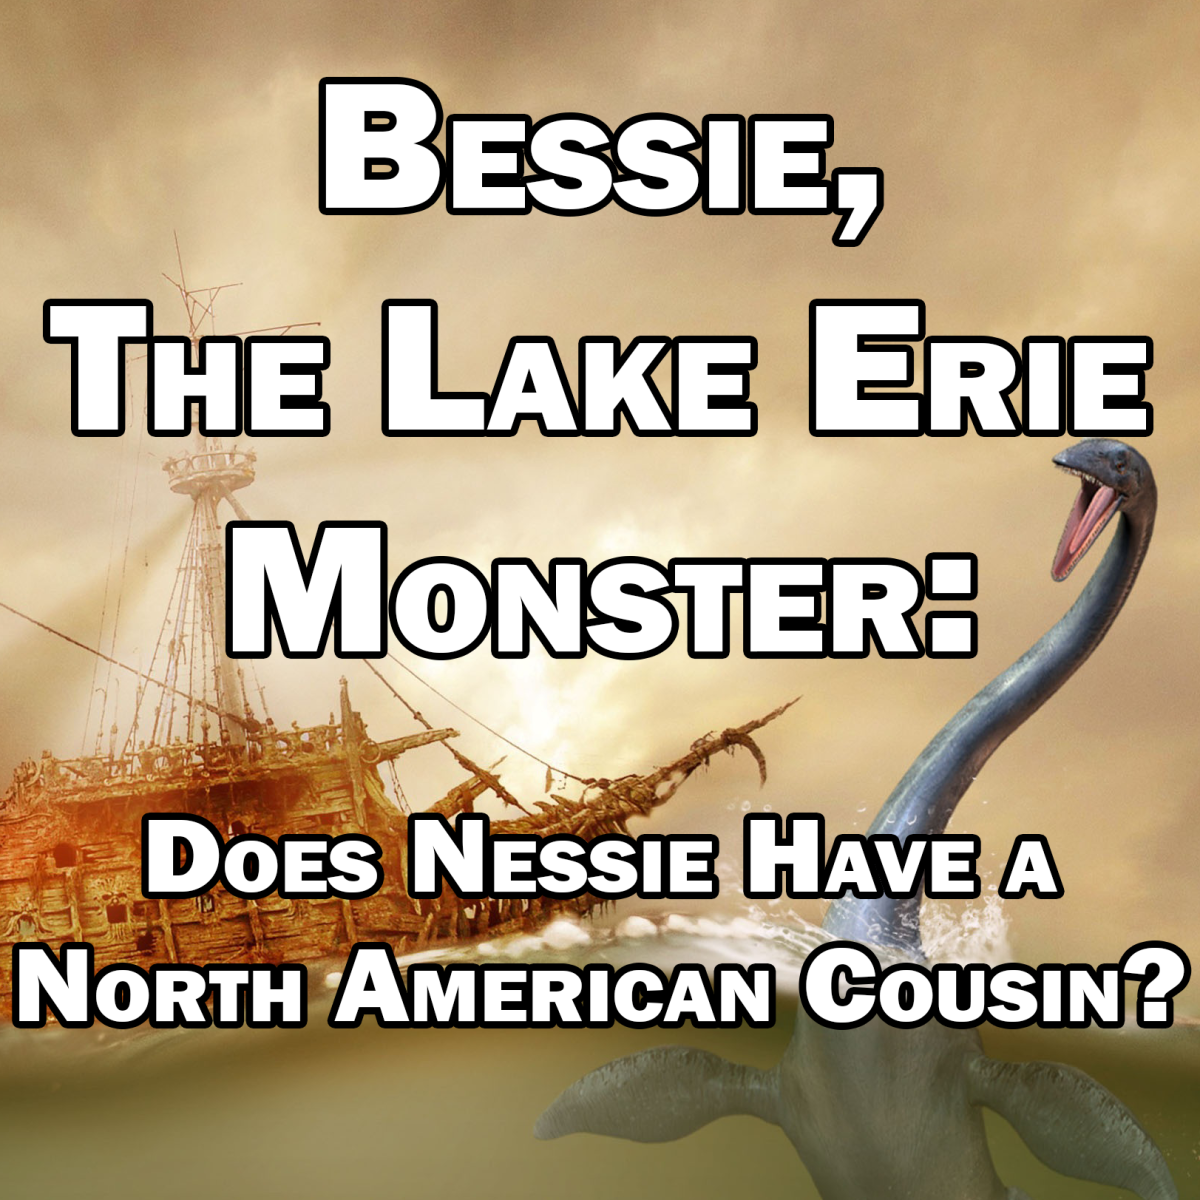 Bessie, the Lake Erie Monster: Does Nessie Have a North American Cousin?